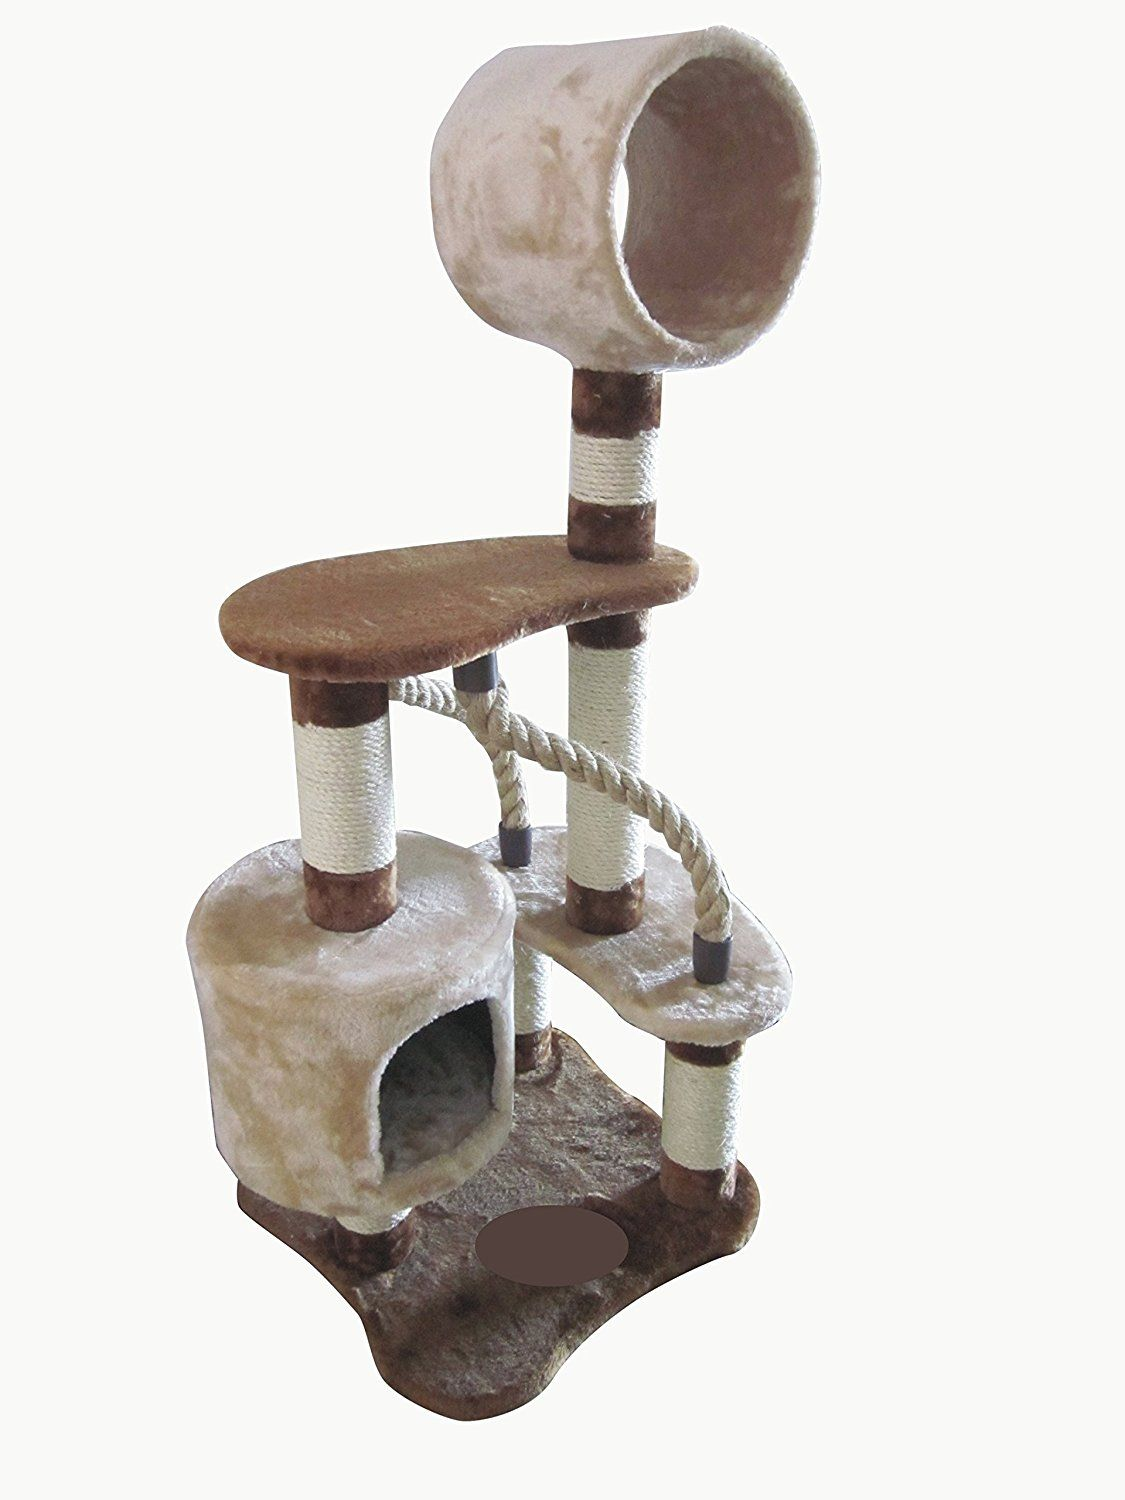 Iris 4 Tier Cat Tree Condo Cat Playground You Can Find More Details Here Cat Tree And Tower Cat Tree Condo Cat Playground Cool Cat Trees